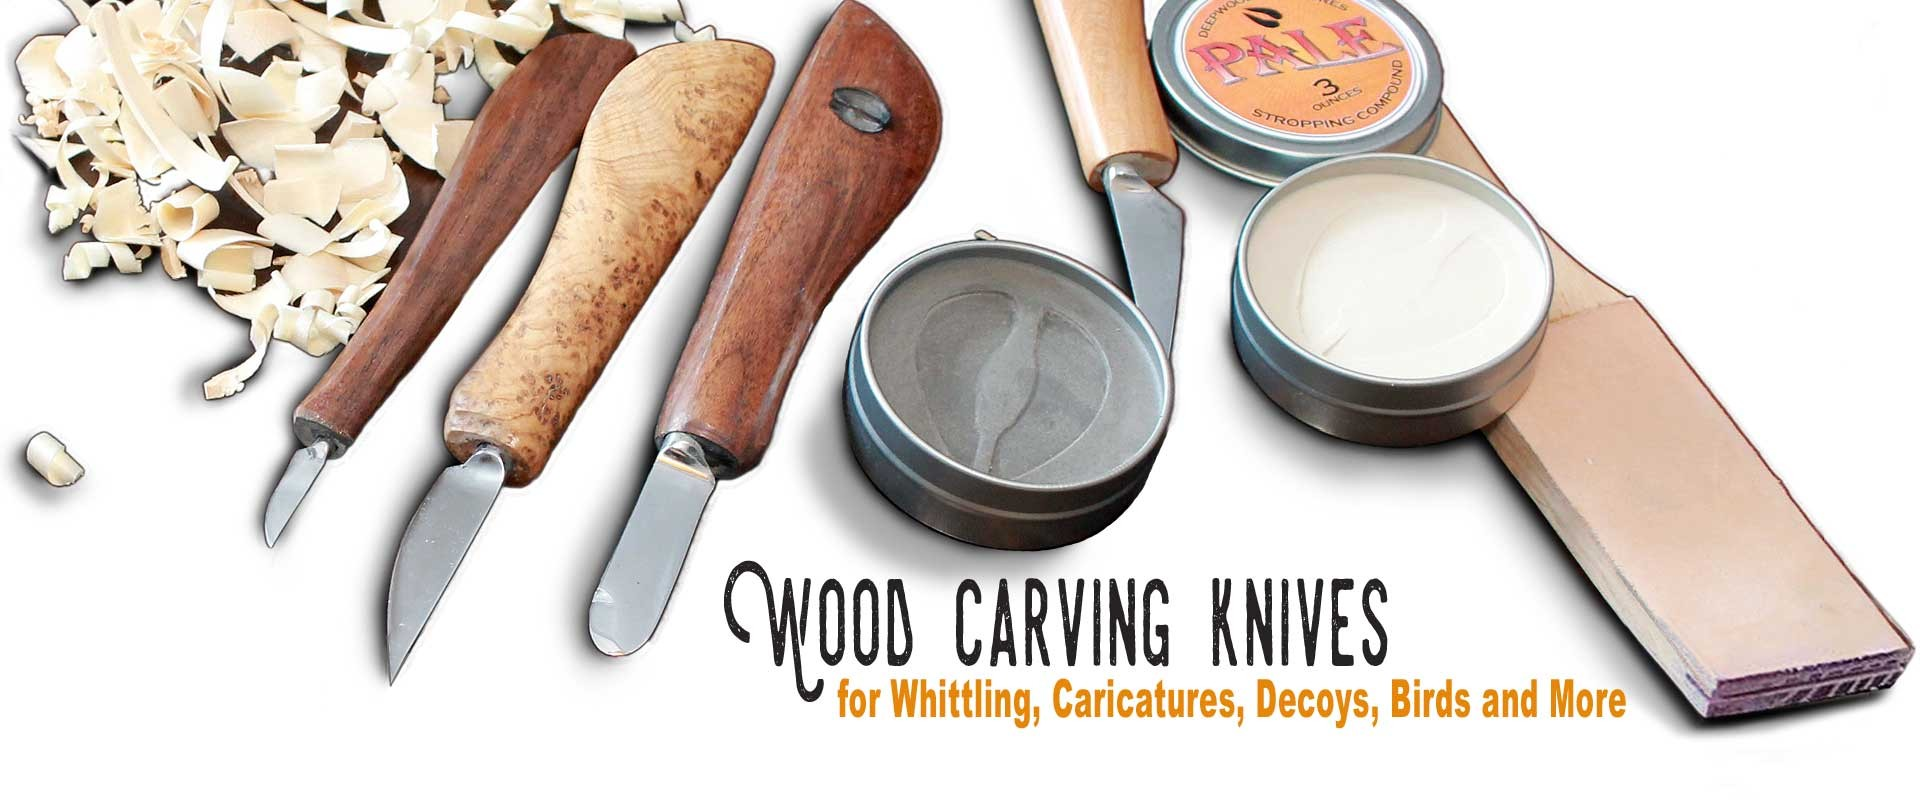 2 Deepwoods Woodcarving Tools Knives Detail /& Roughout Decoy Caricature